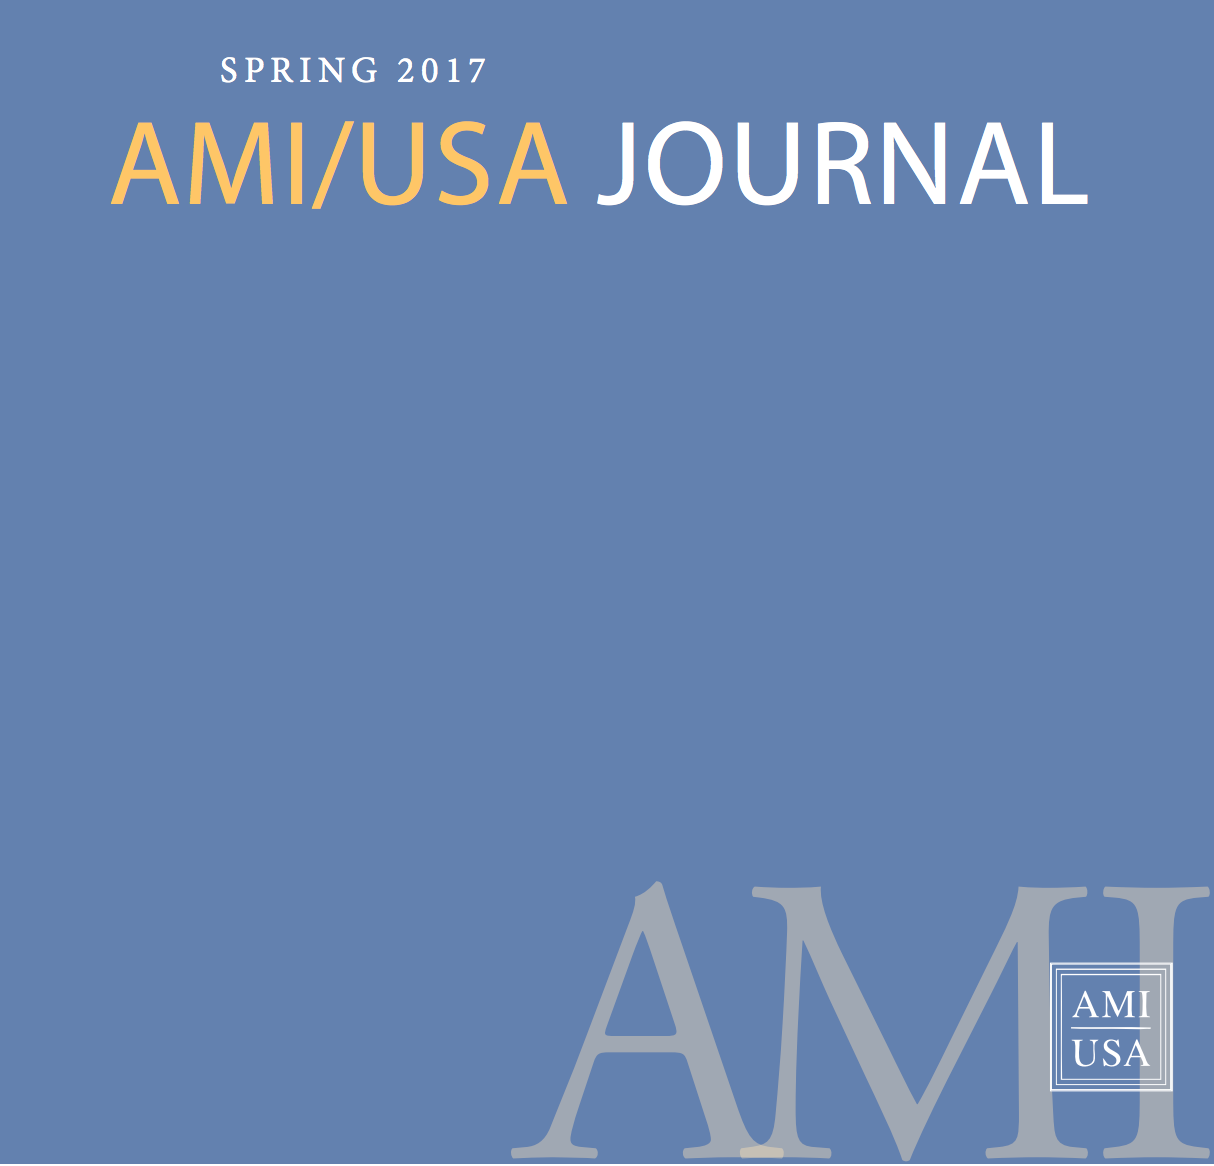 AMI/USA Journal